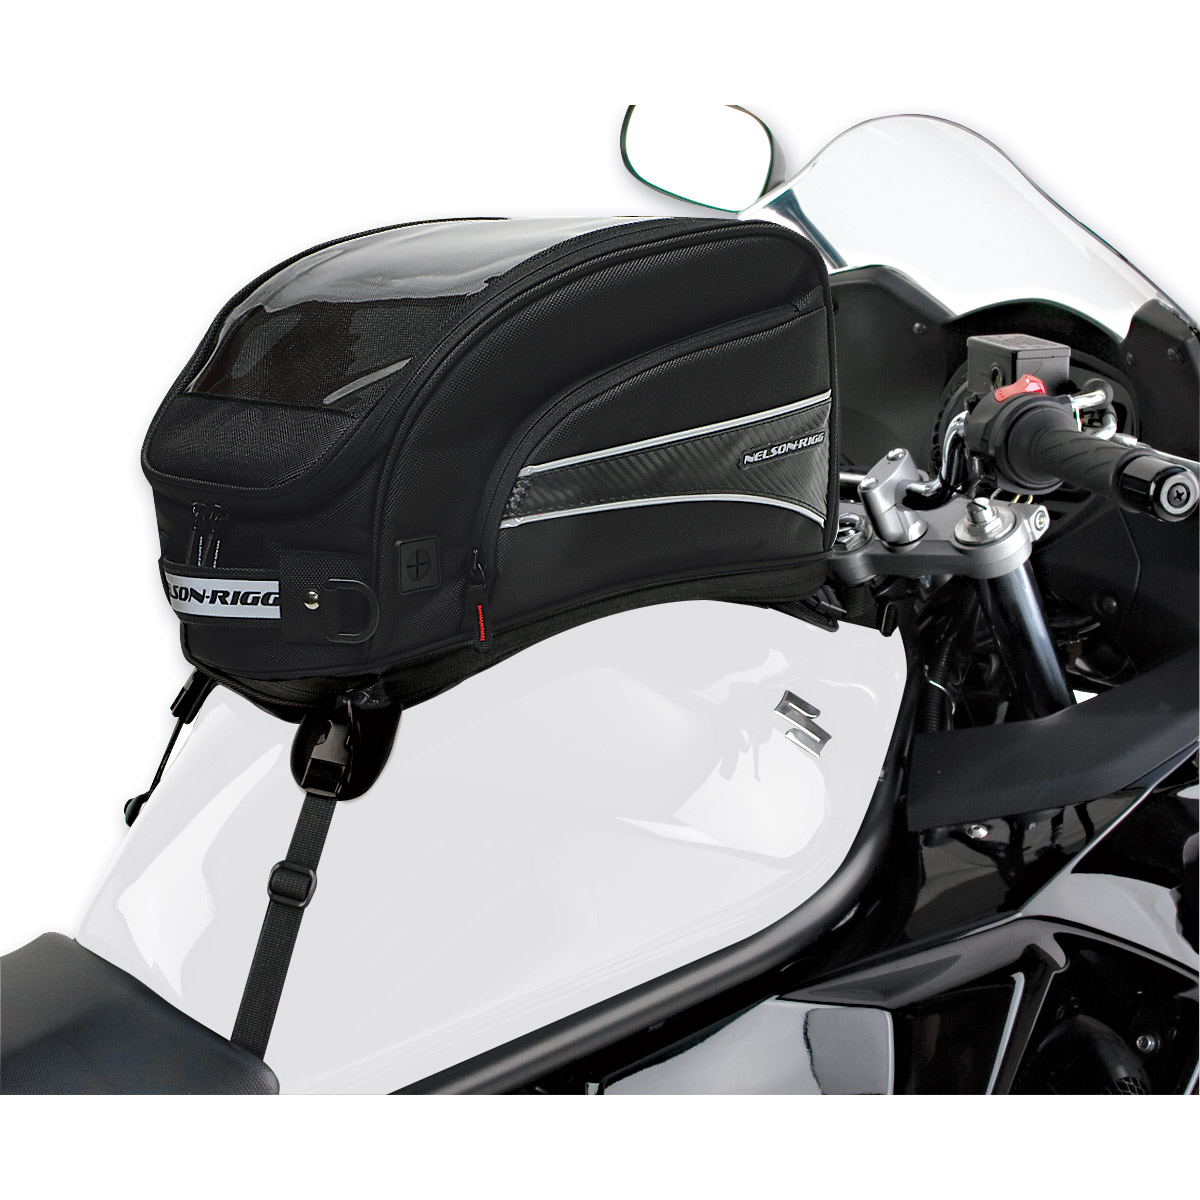 Nelson Rigg Cl 2017 St Journey Xl Tank Bag Strap Mount